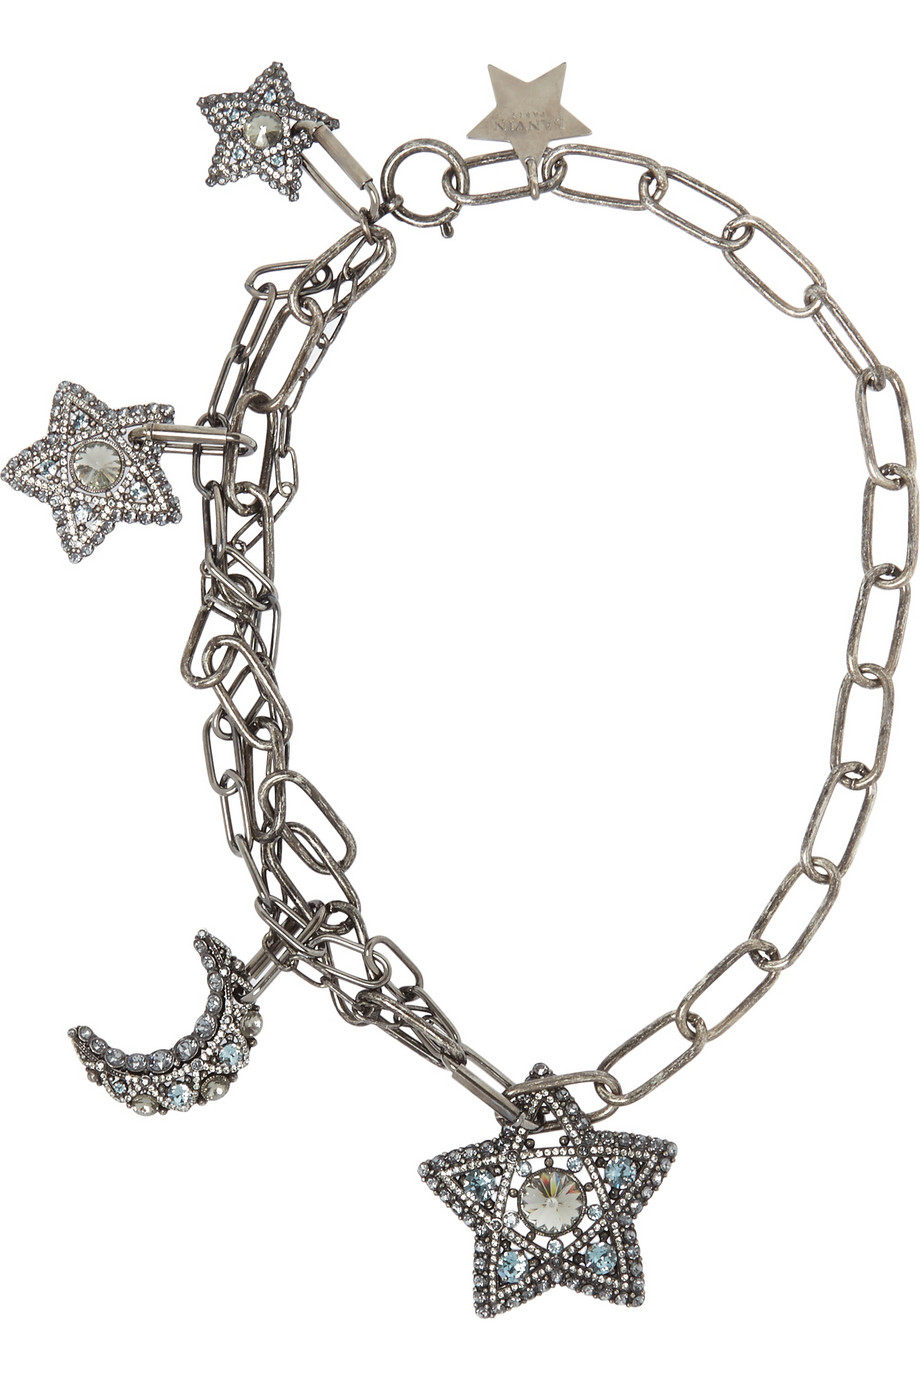 Lanvin  necklace - was $1,690, now $1,014